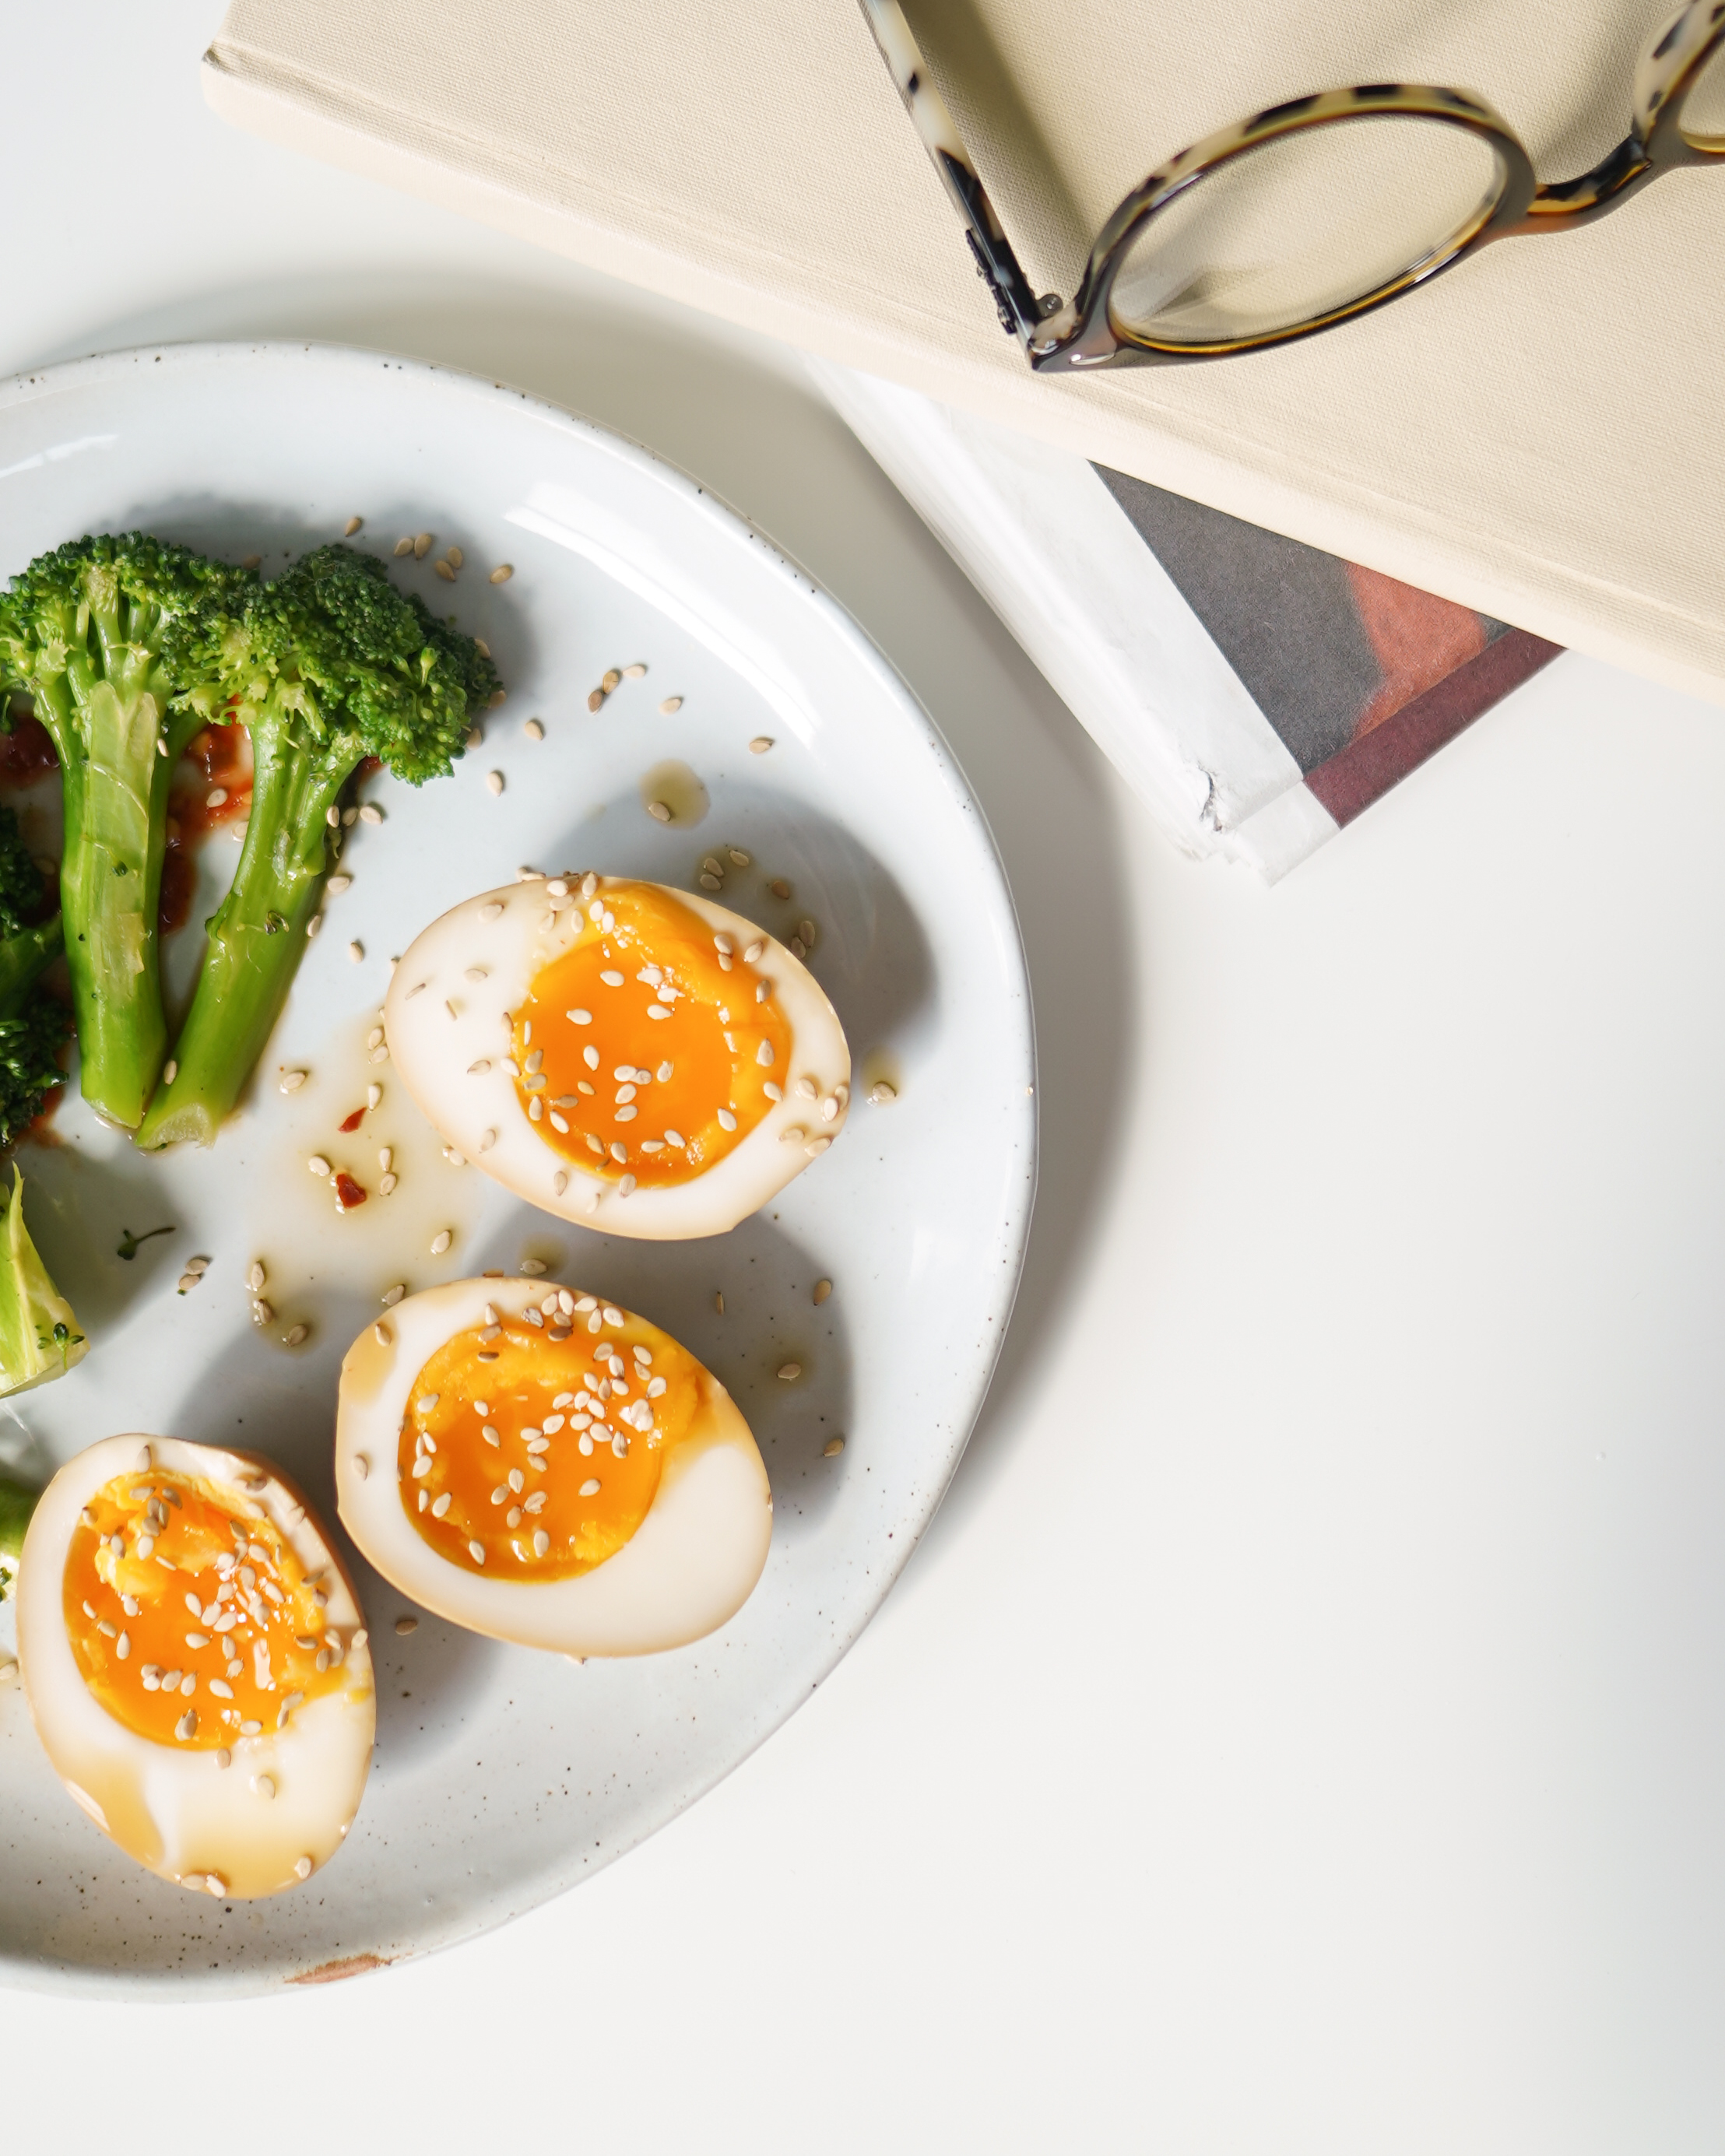 Jammy marinated eggs and spicy broccoli